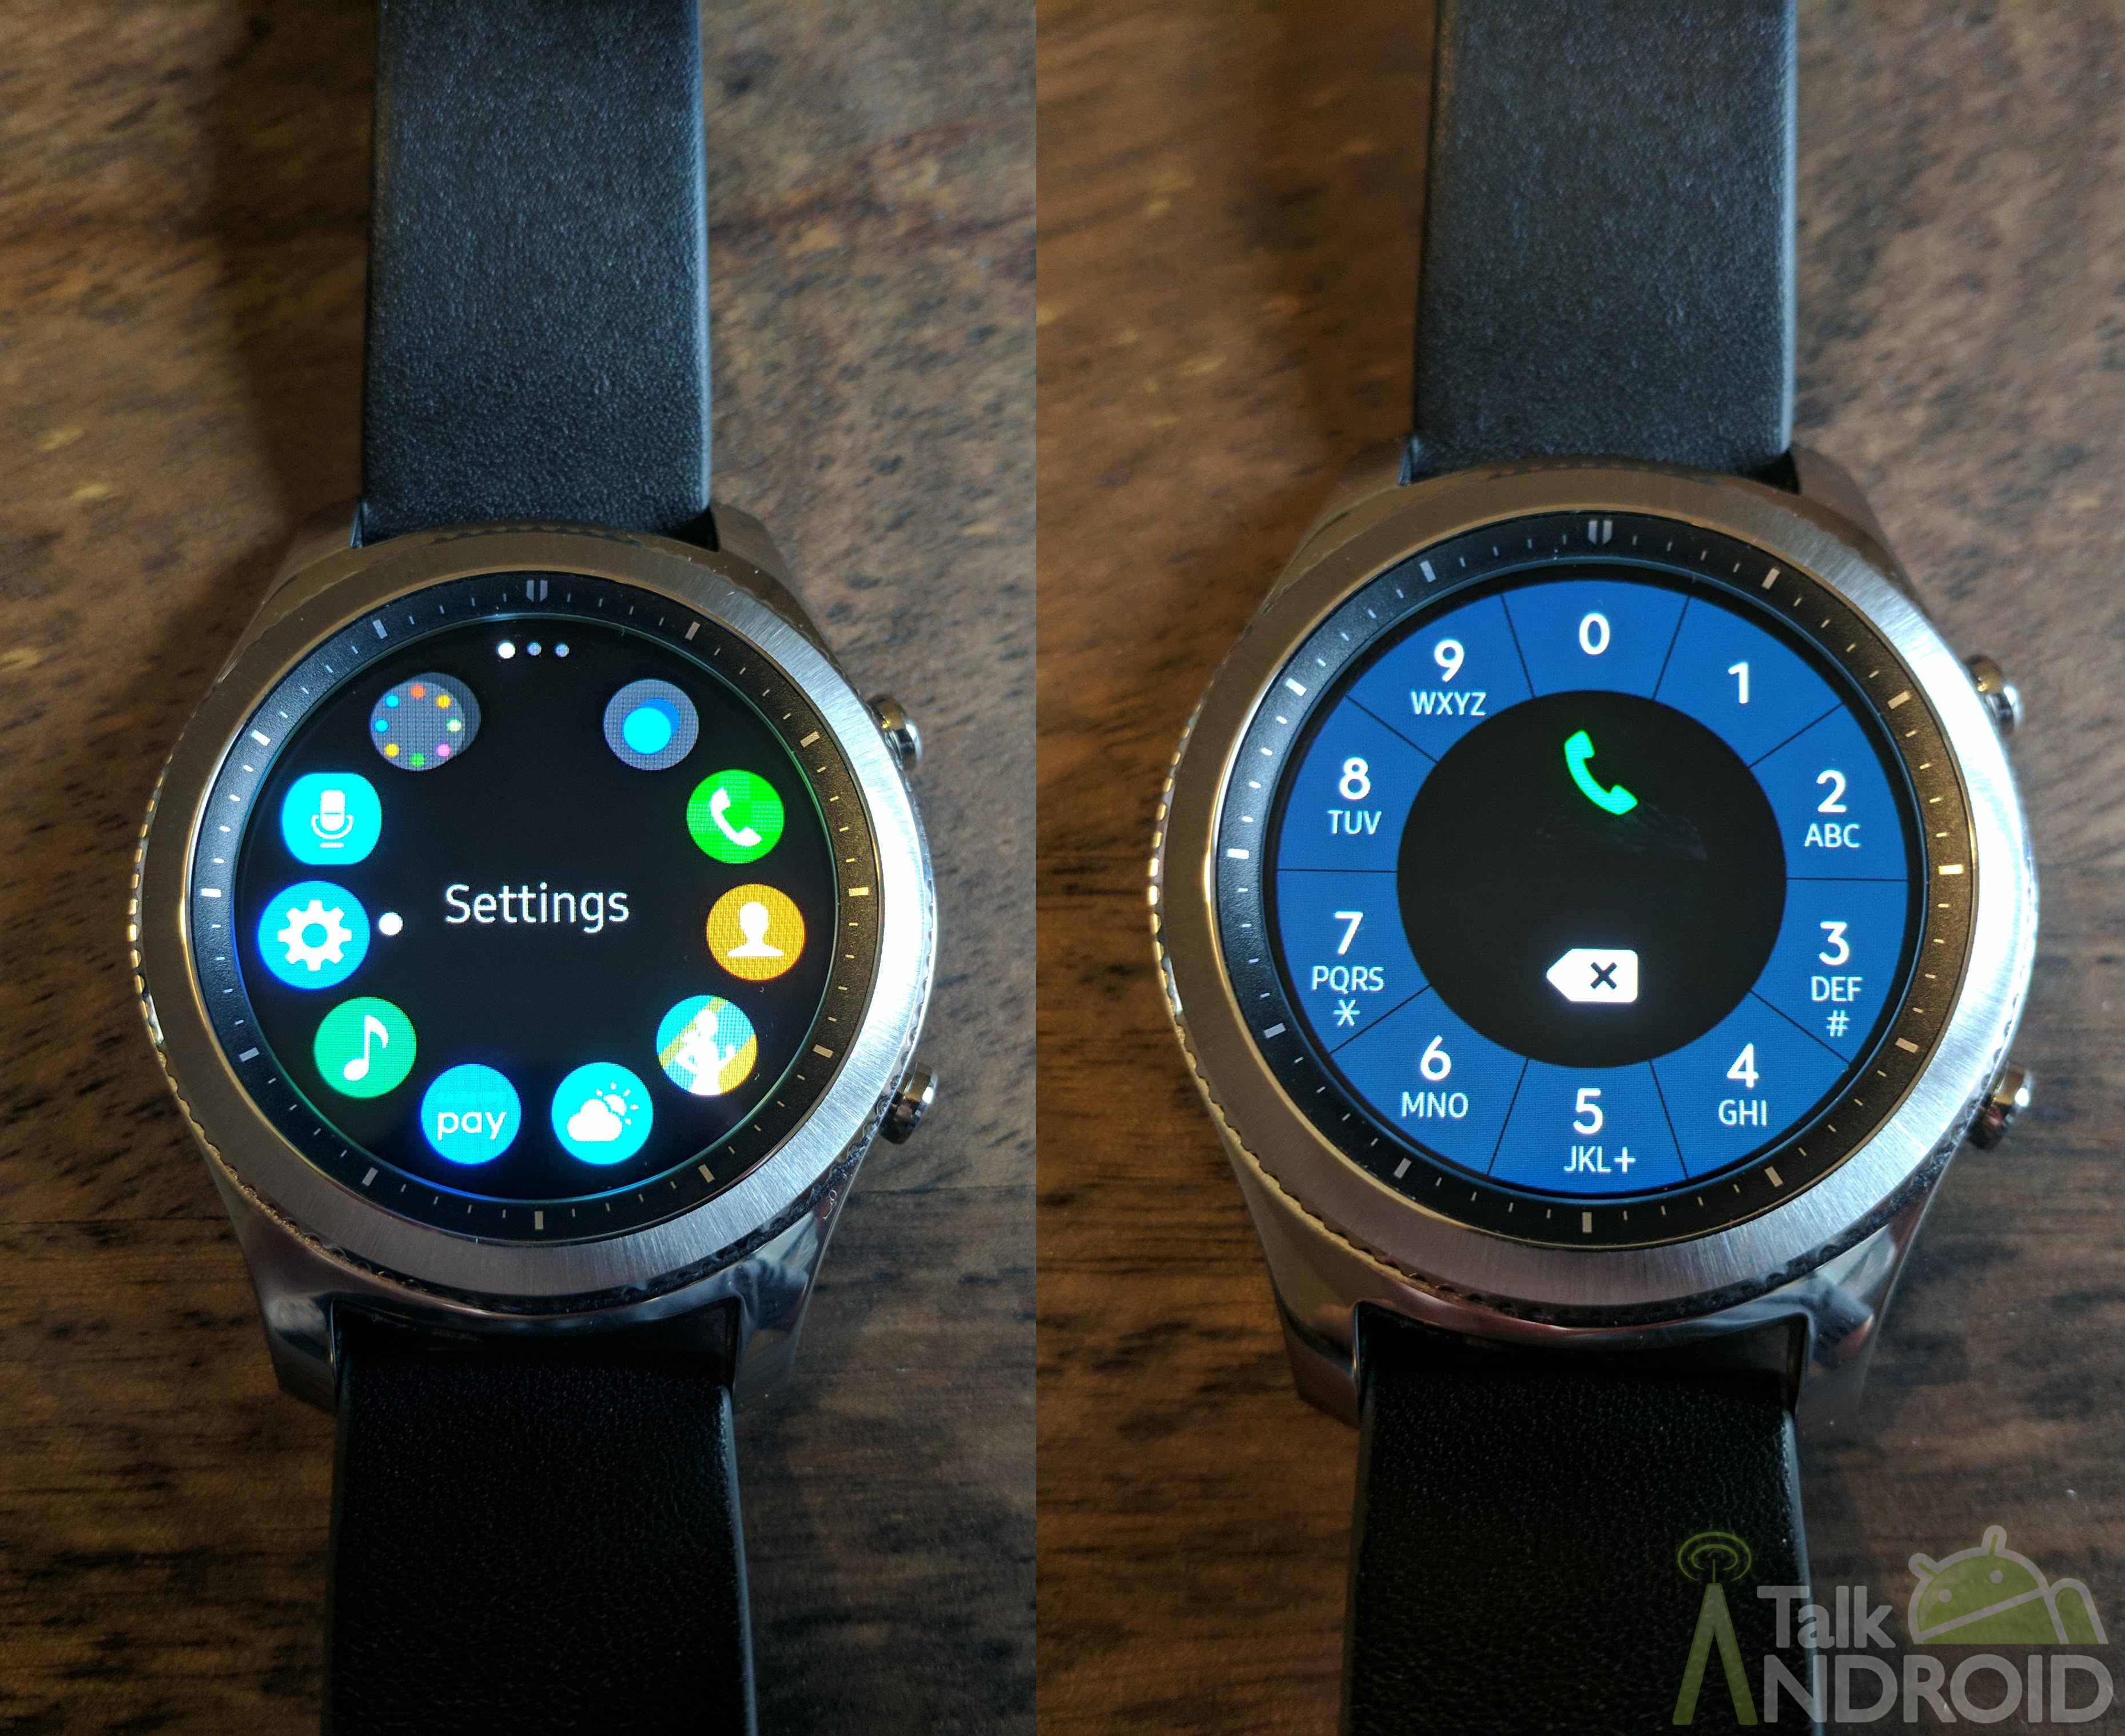 Samsung Gear S3 Classic review: A great smartwatch if you ...